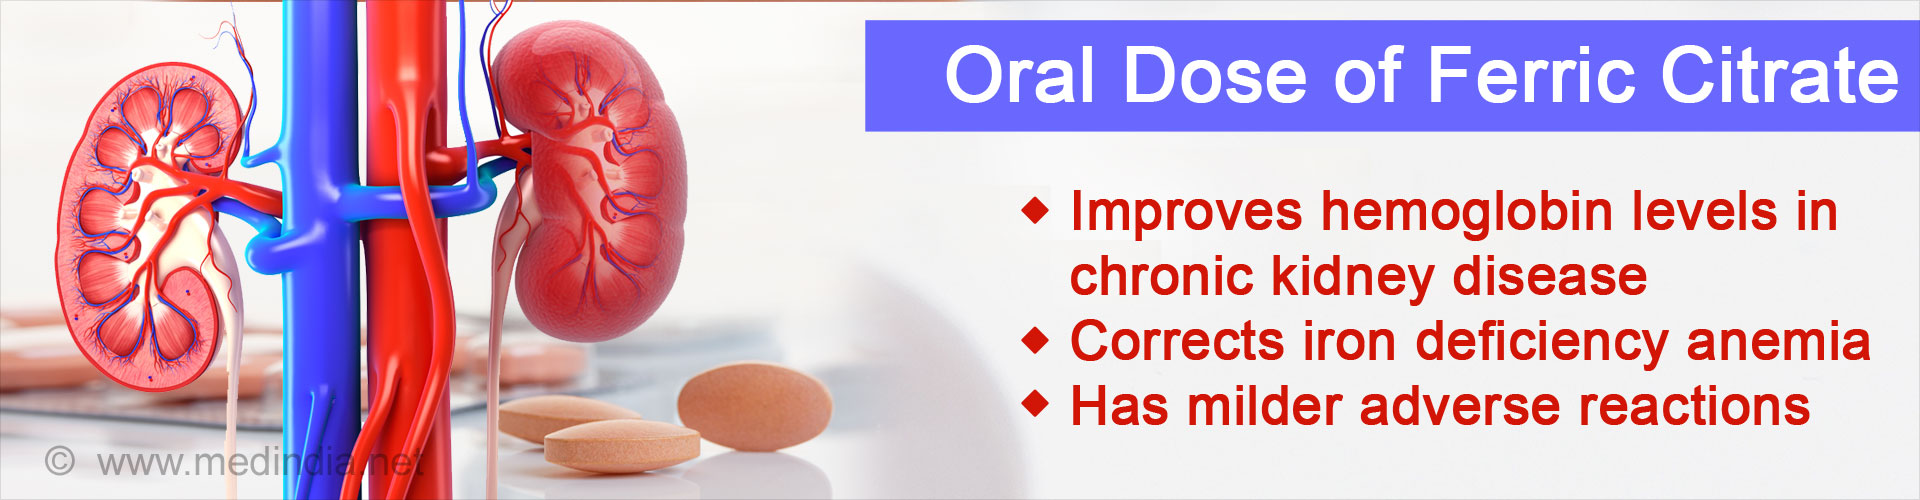 Iron Deficiency Anemia in Kidney Disease can be Treated With Oral Ferric Citrate